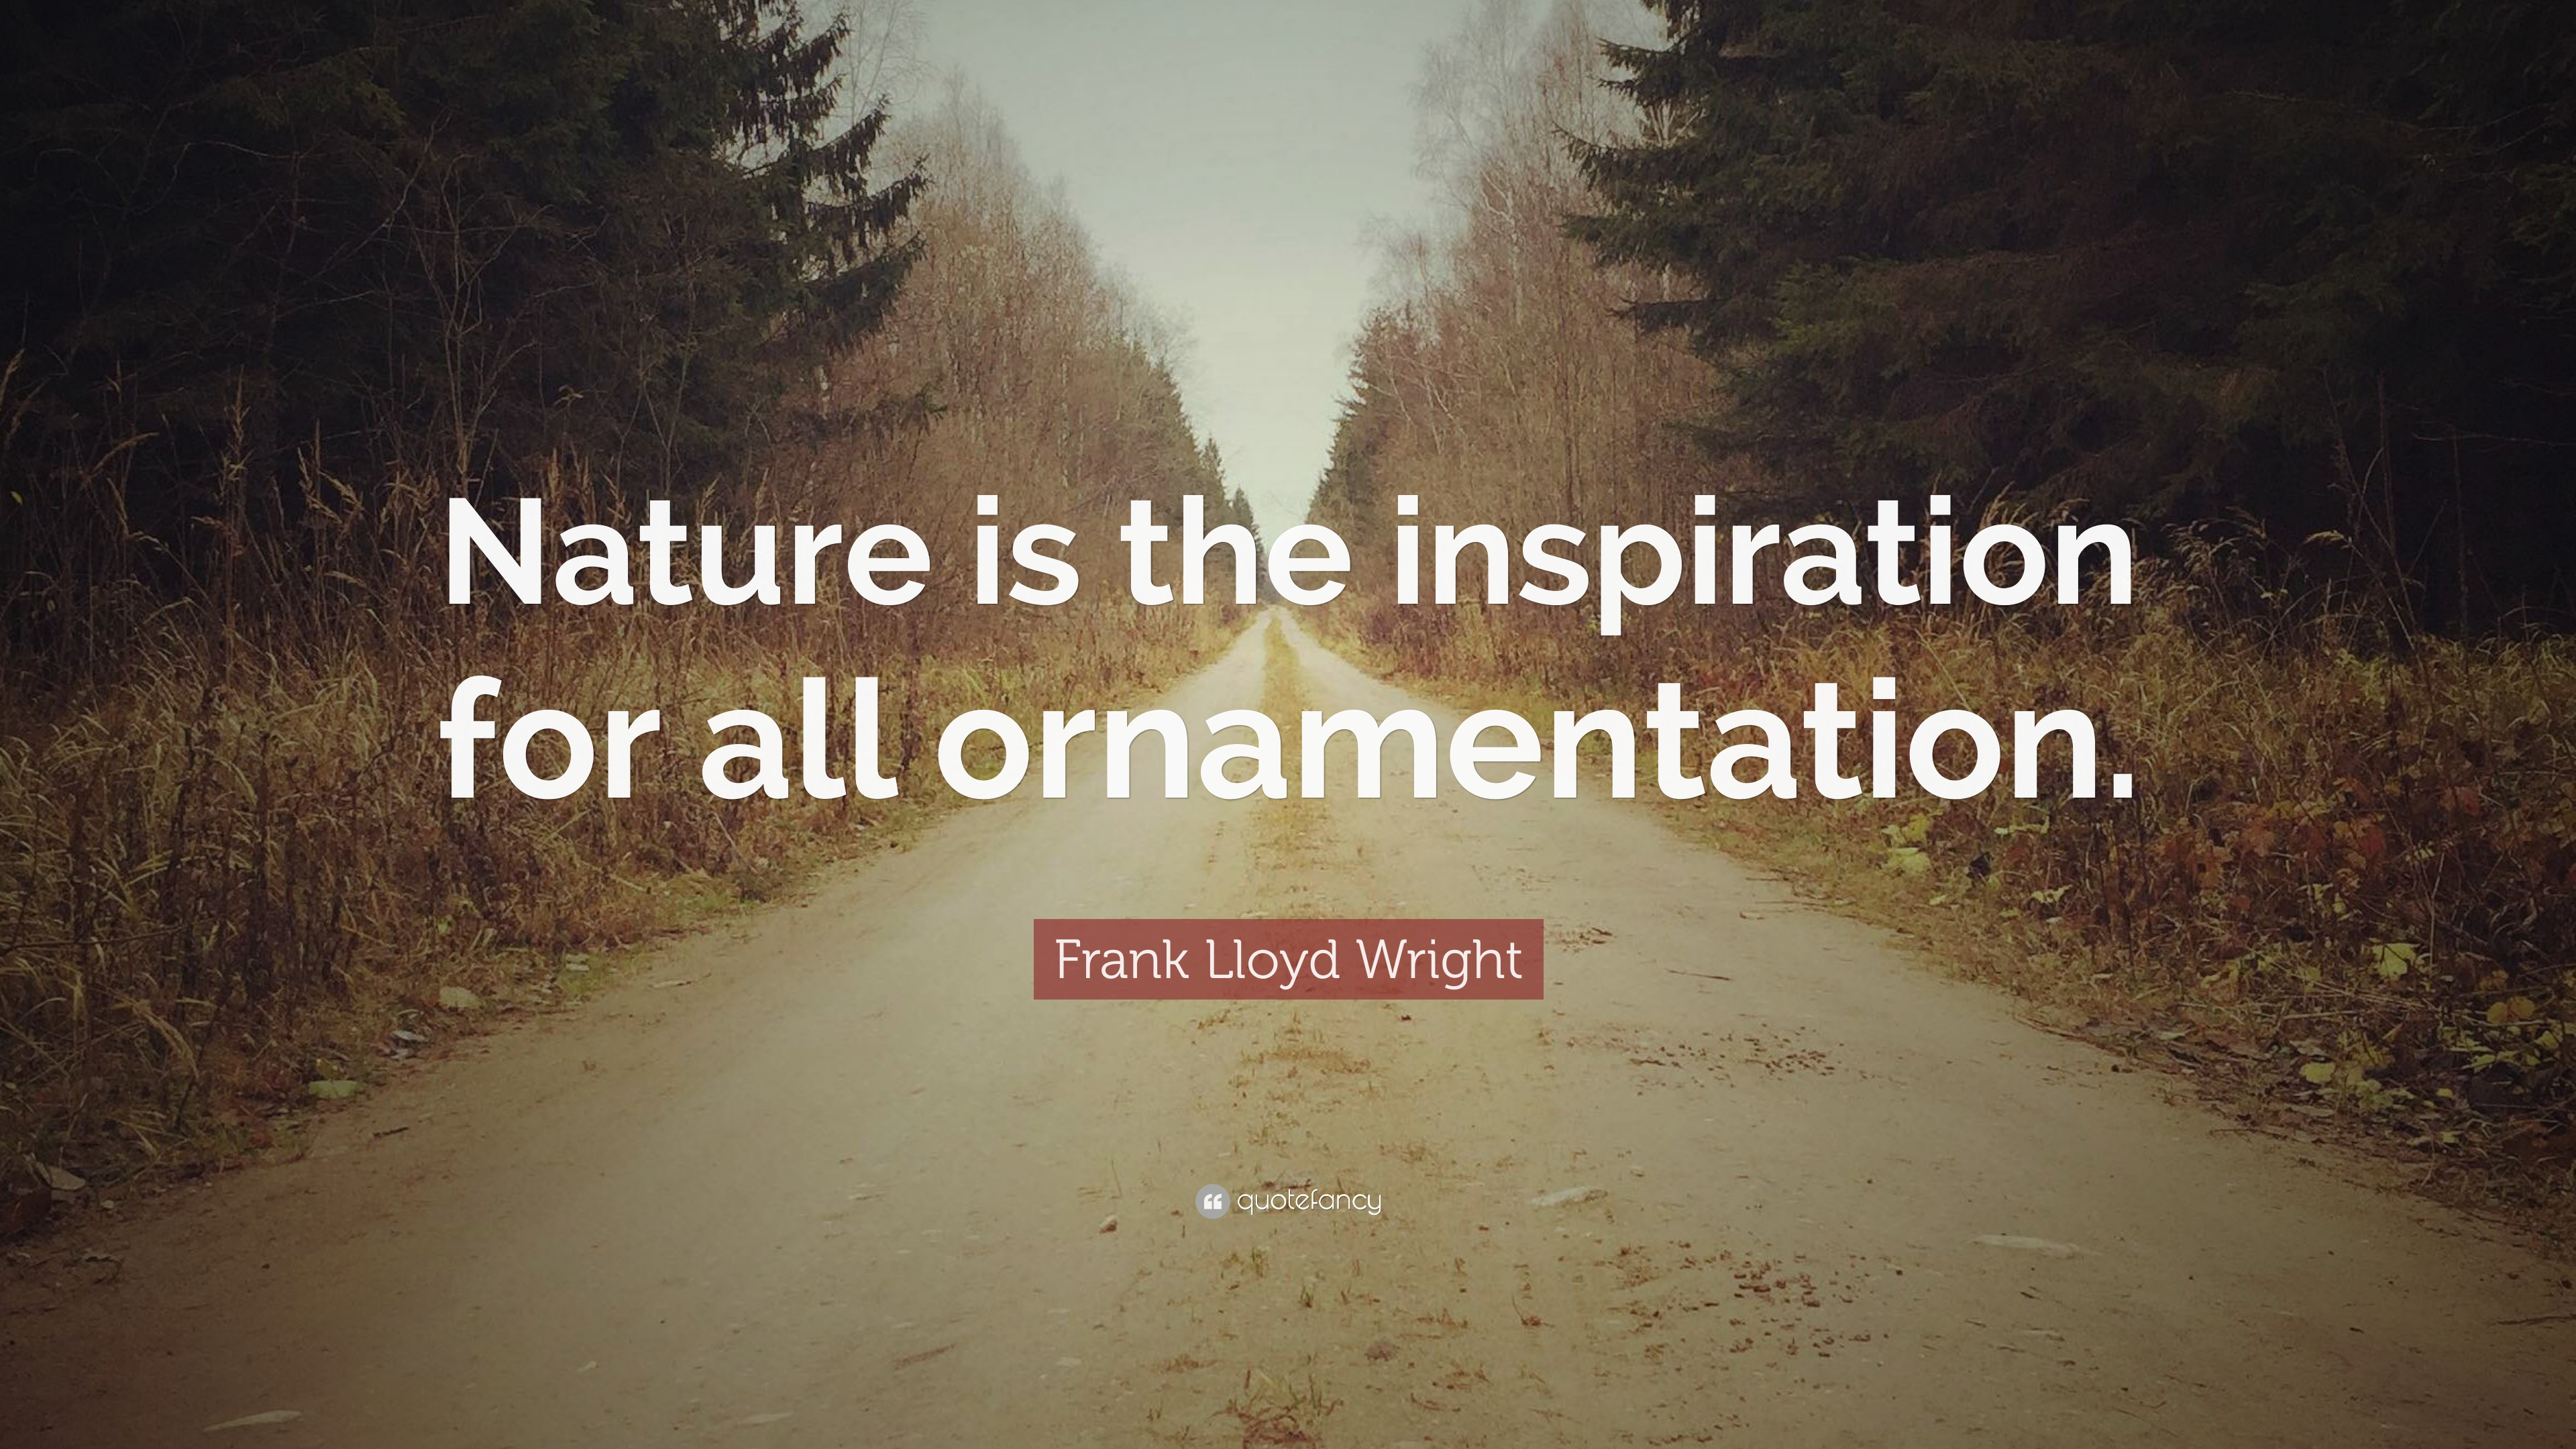 Frank Lloyd Wright Quote: U201cNature Is The Inspiration For All Ornamentation.u201d